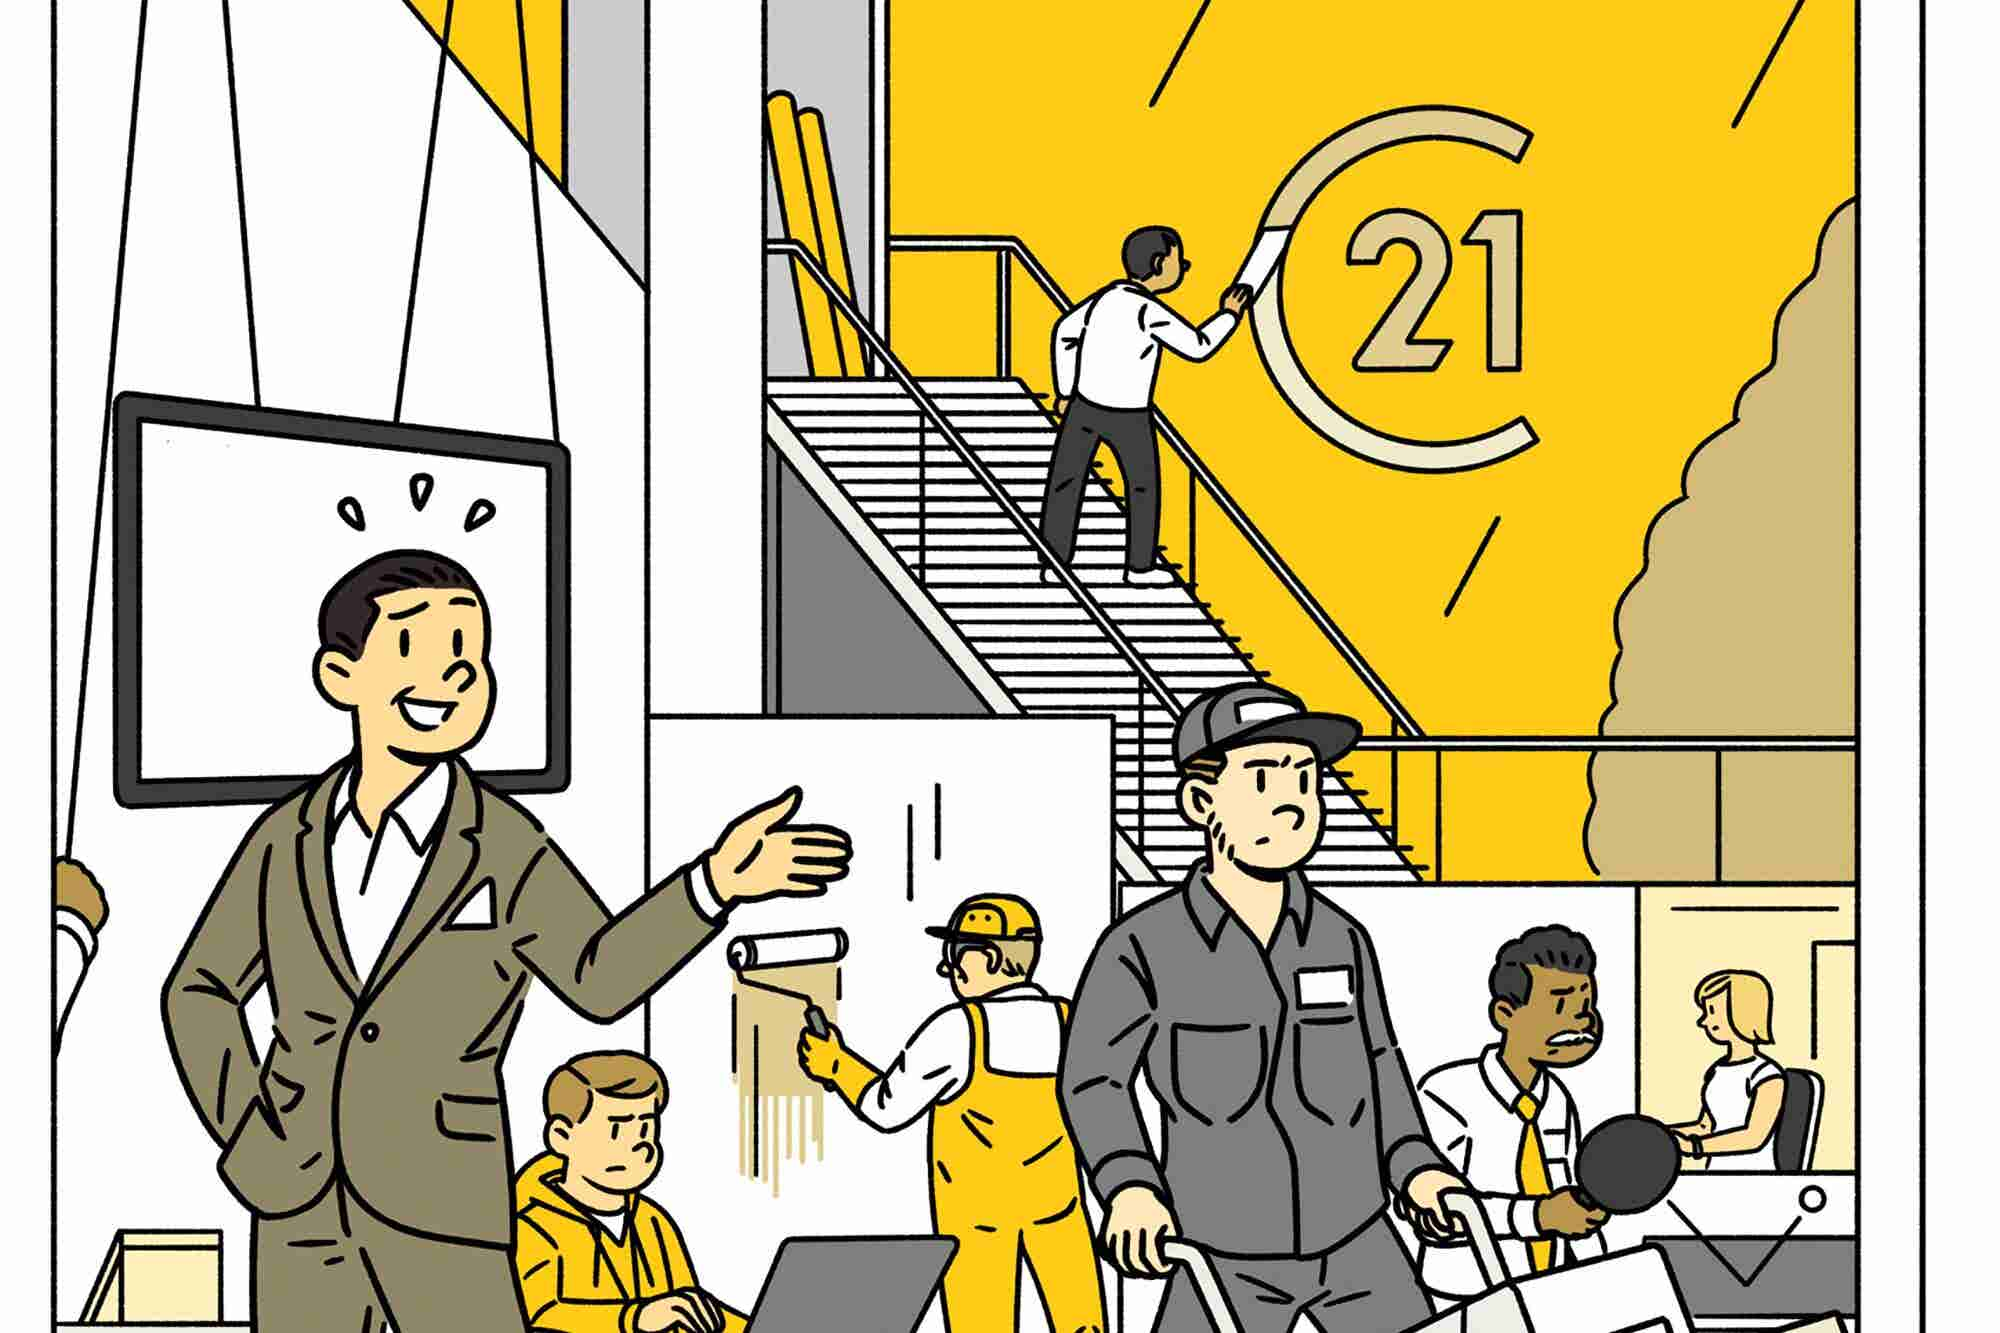 Old Company. Troubled Industry. Inside the Effort to Reboot Century 21...